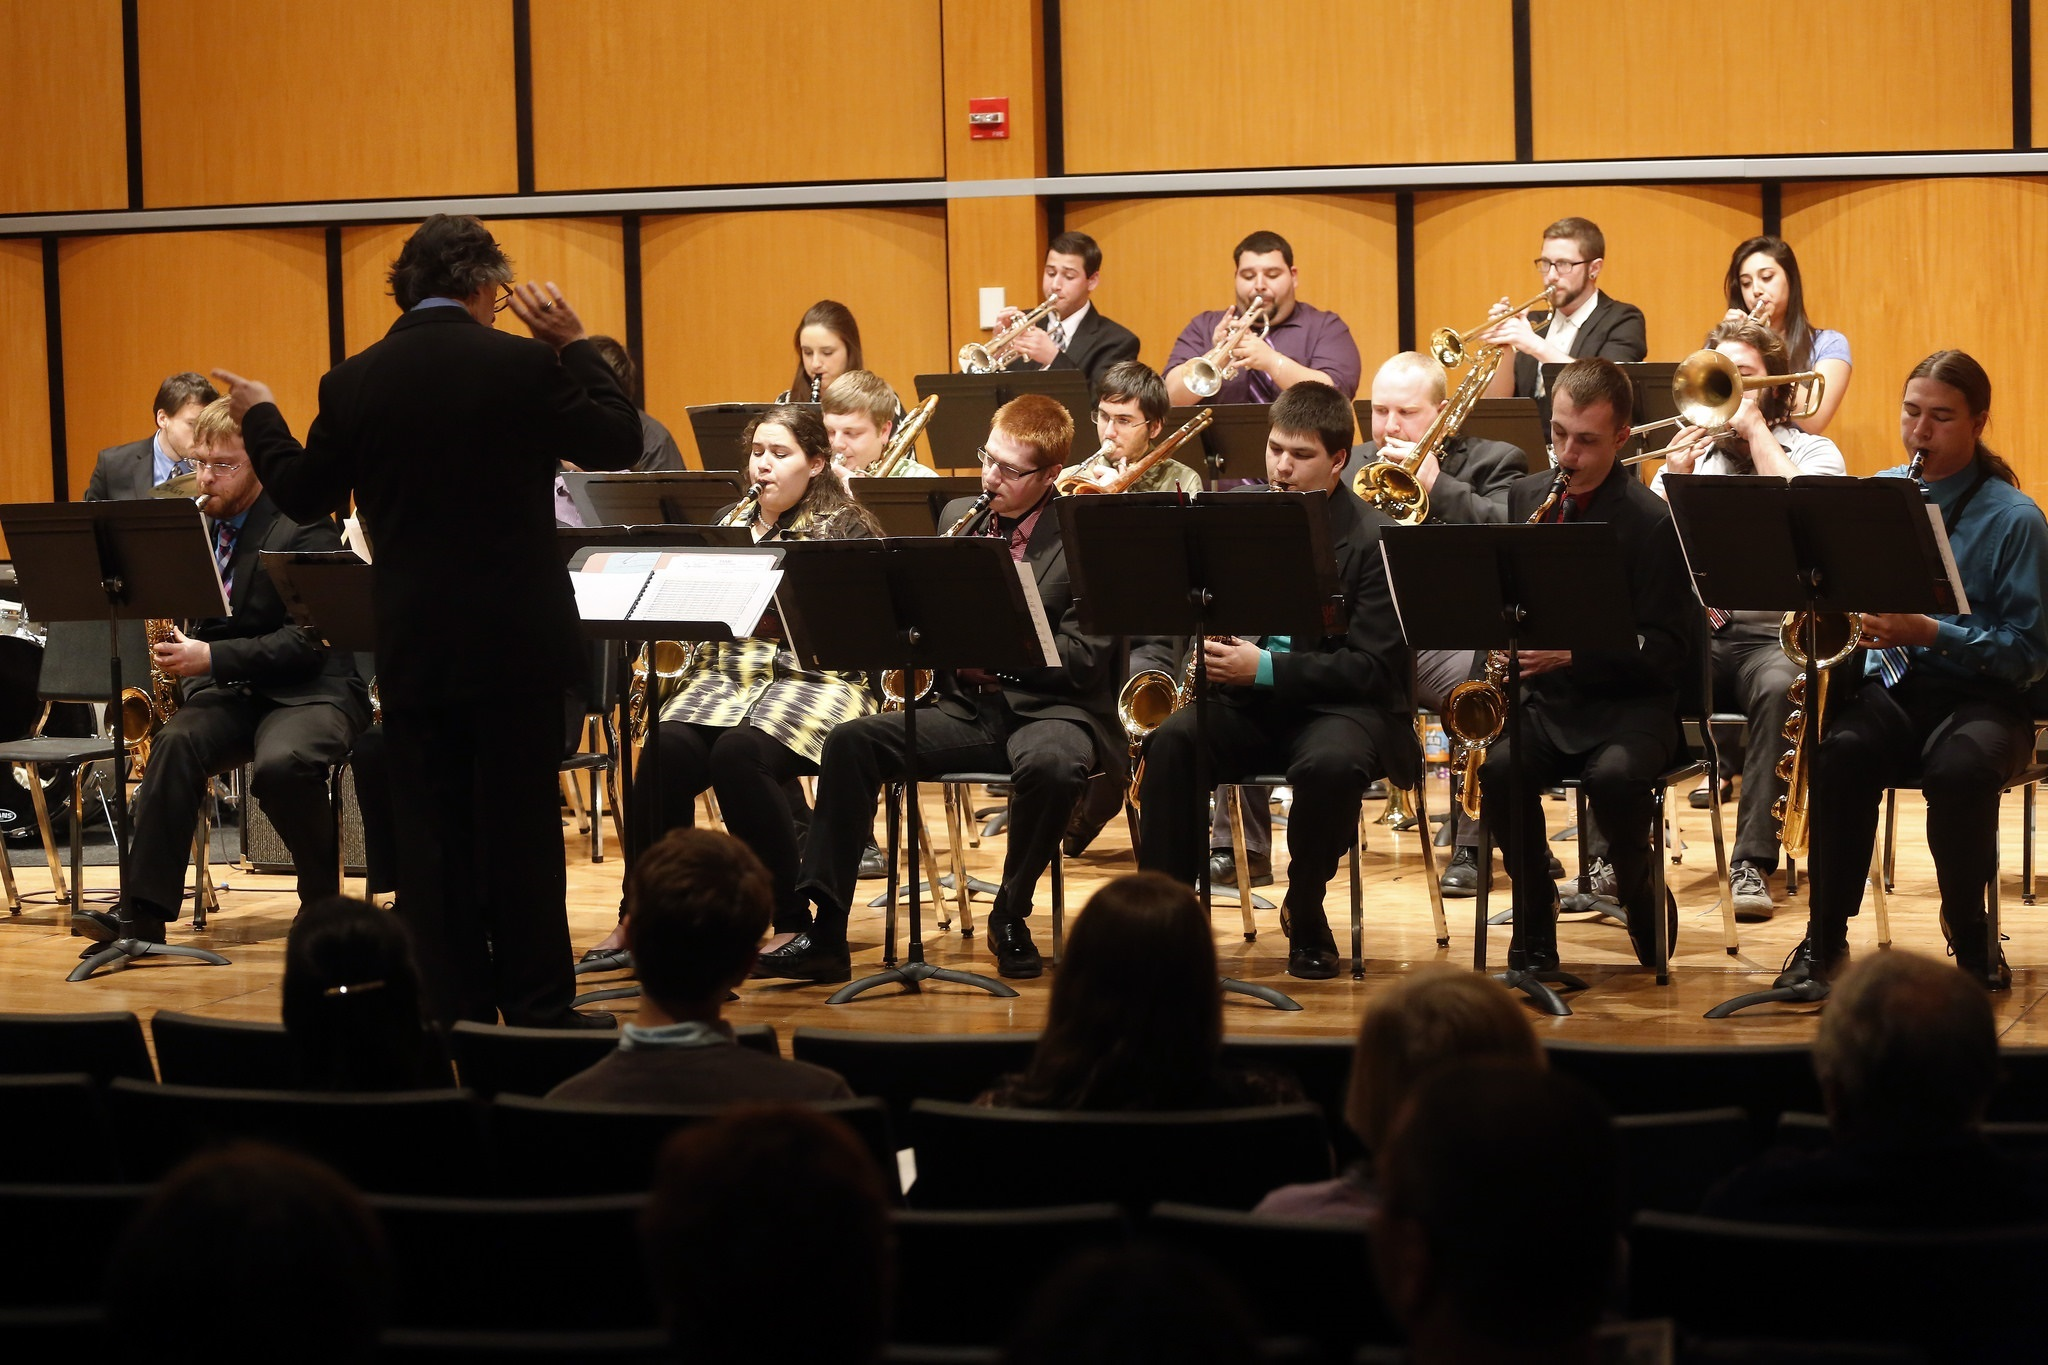 Salem State Jazz Band performing in the Recital Hall